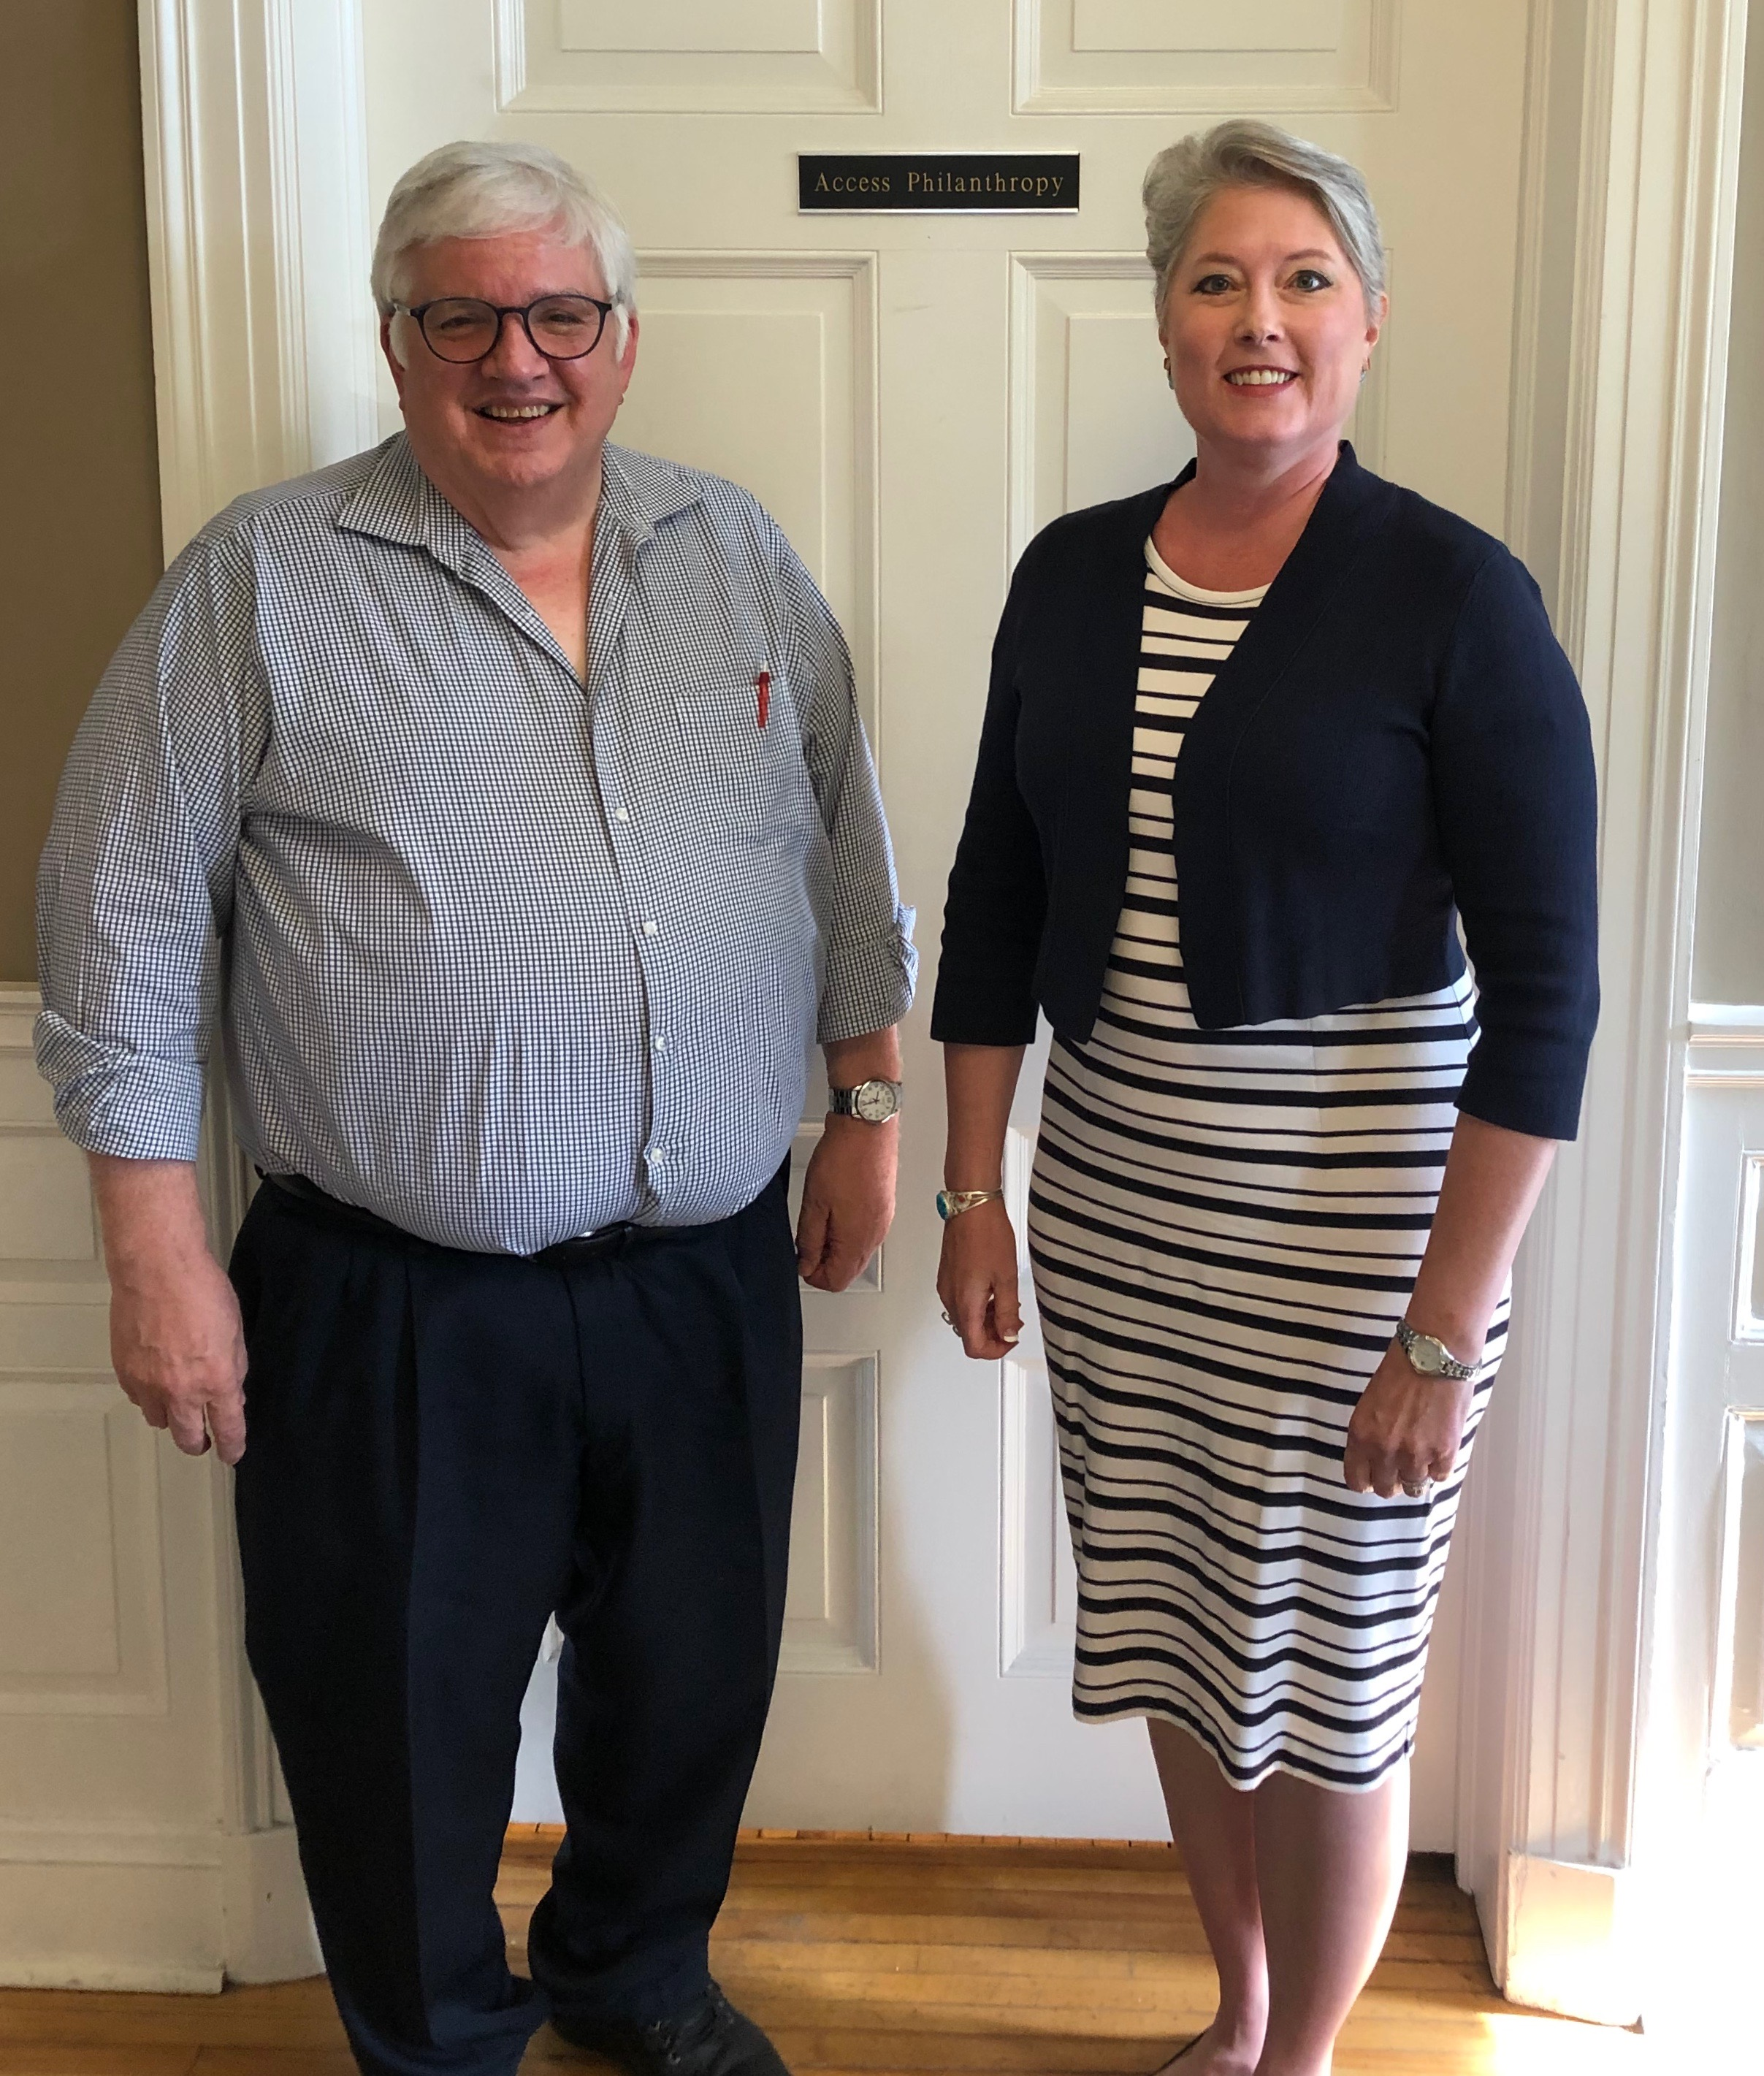 July 2019 Meeting with Access Philanthropy